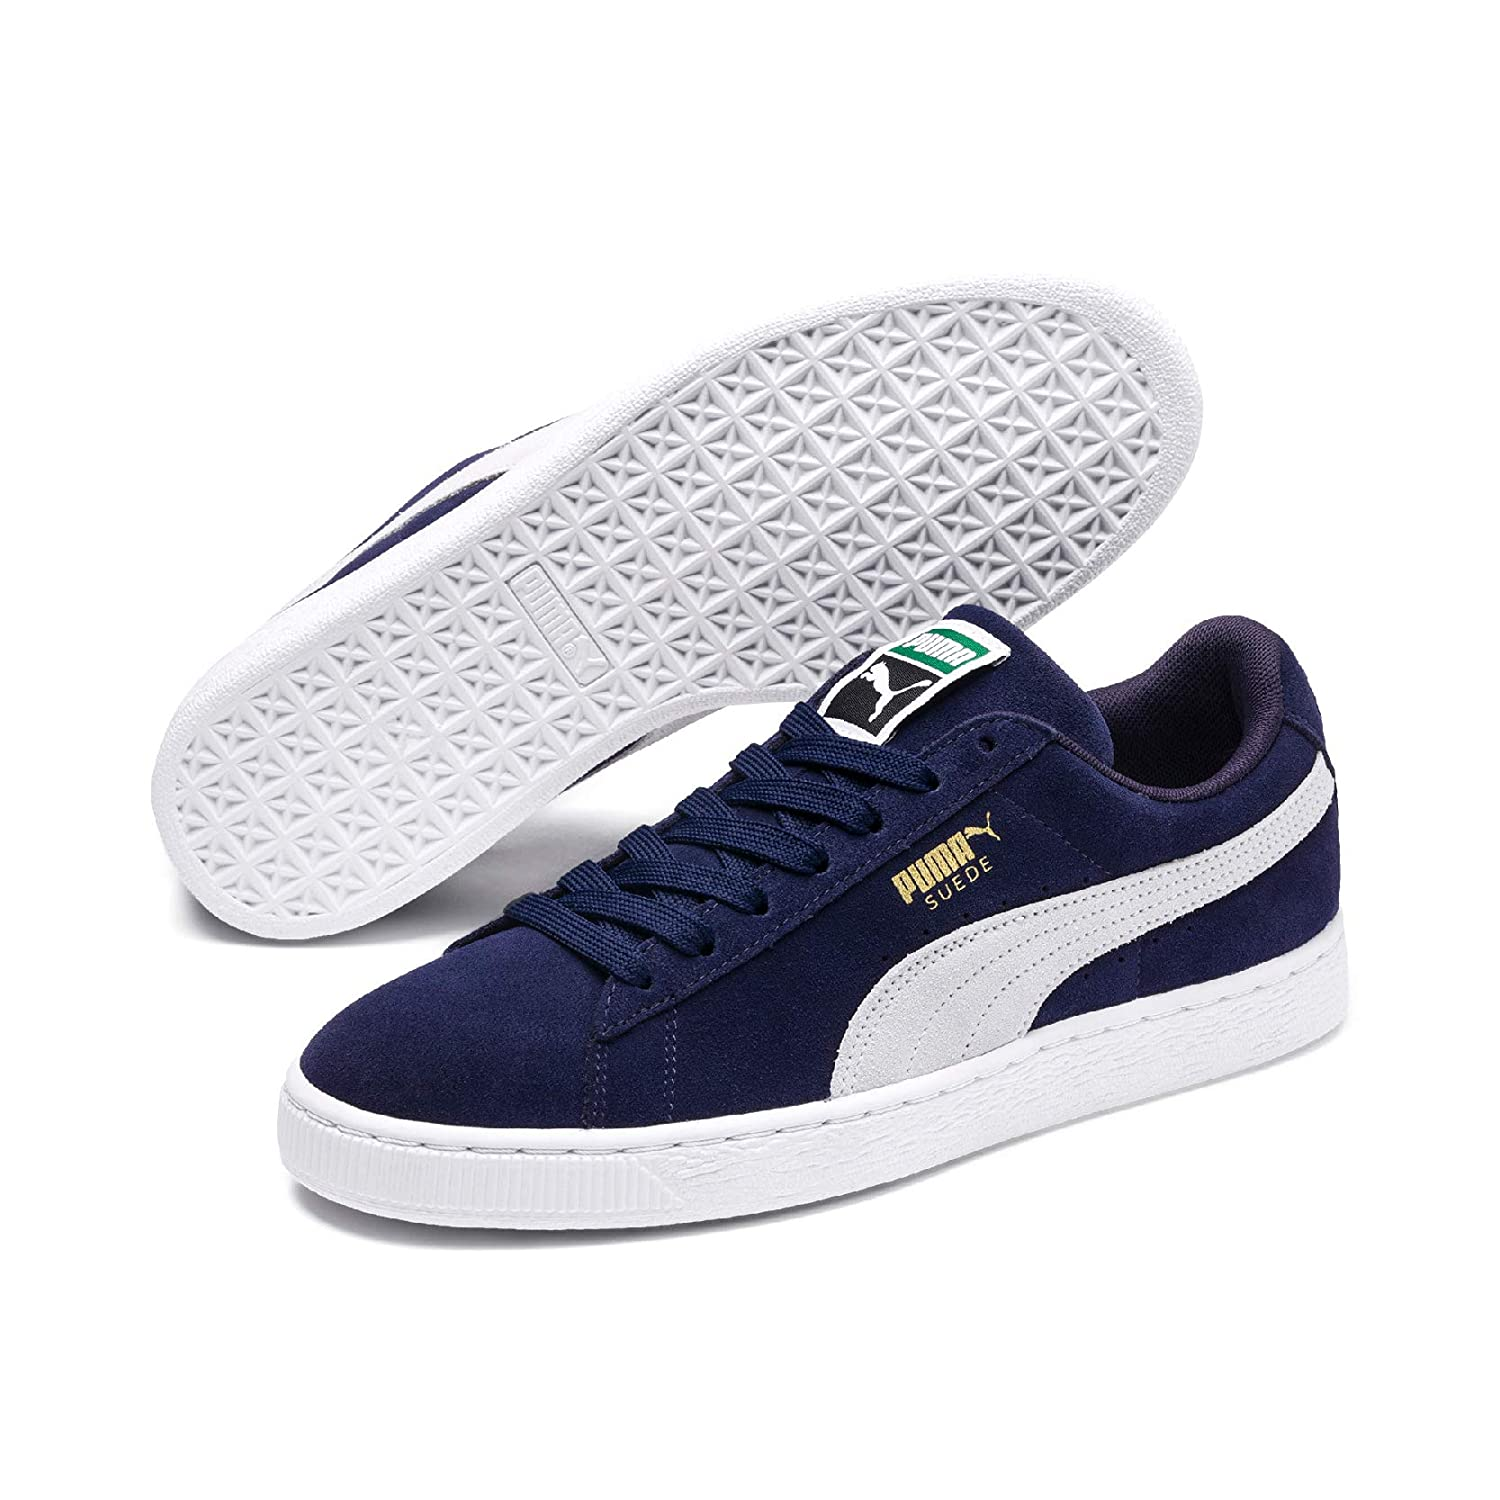 51cf03278df1e Puma Unisex Adults  Suede Classic + Sneakers  Amazon.co.uk  Shoes   Bags